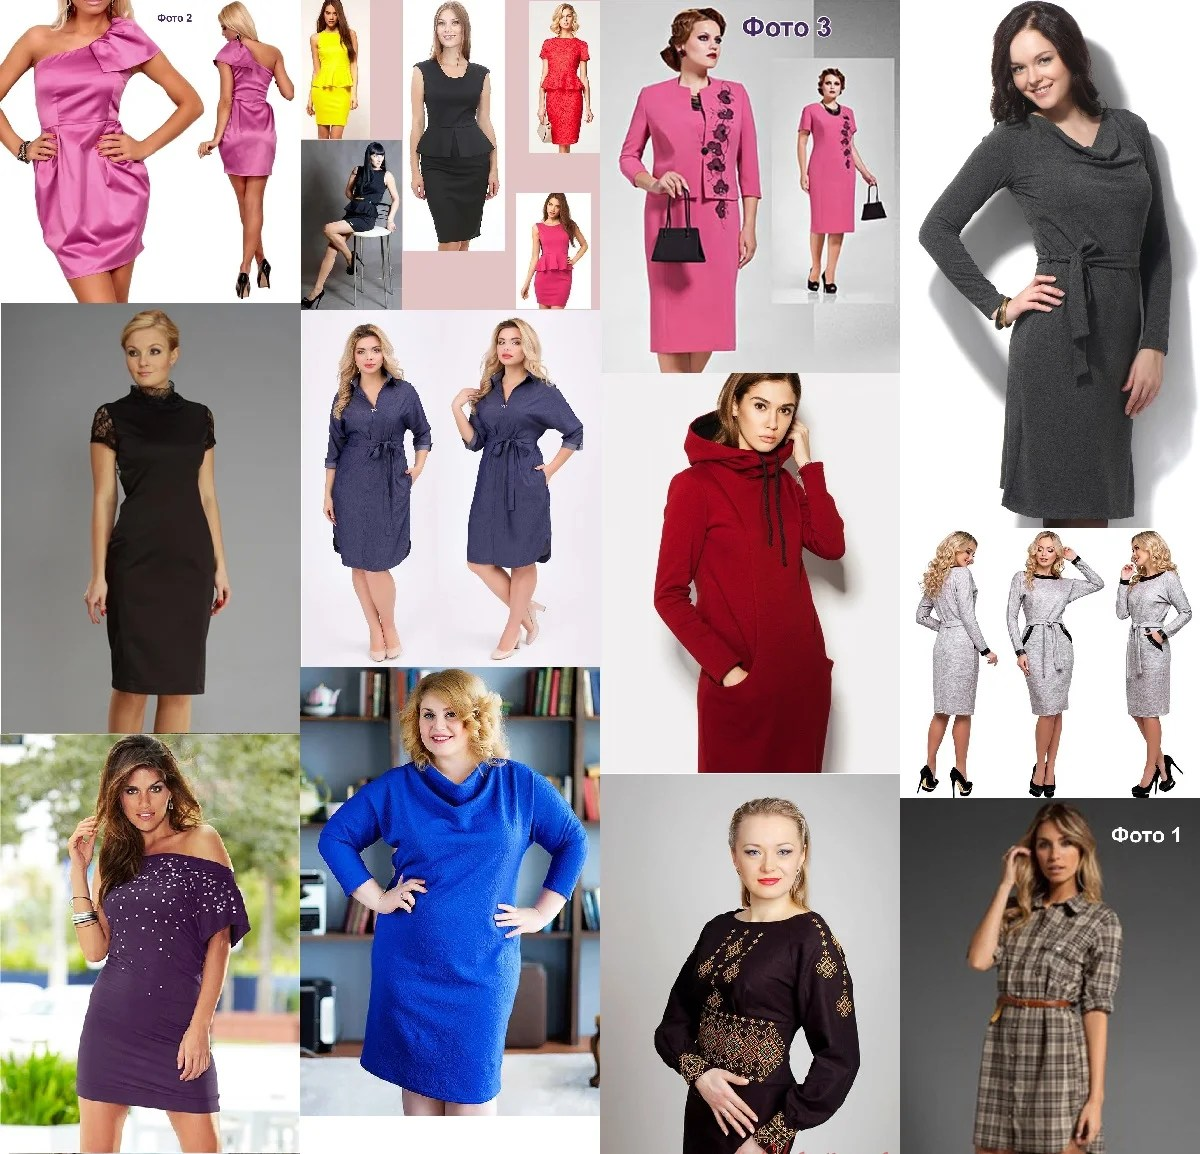 Stock Foto Direct dresses stitched over simple pattern for beginners